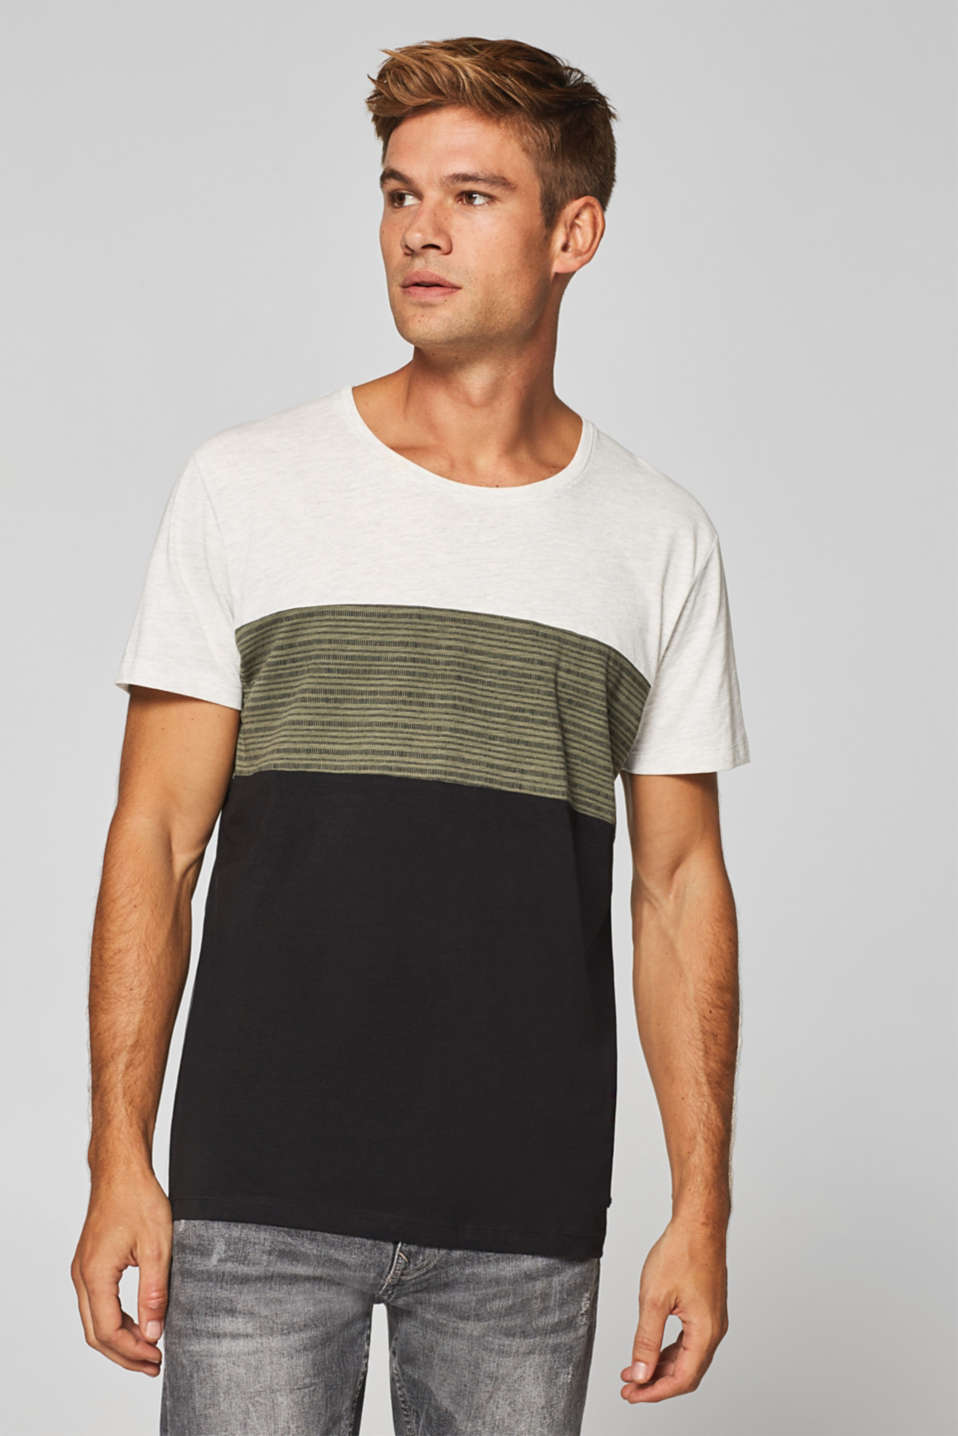 edc - T-shirt with colour block elements, in jersey